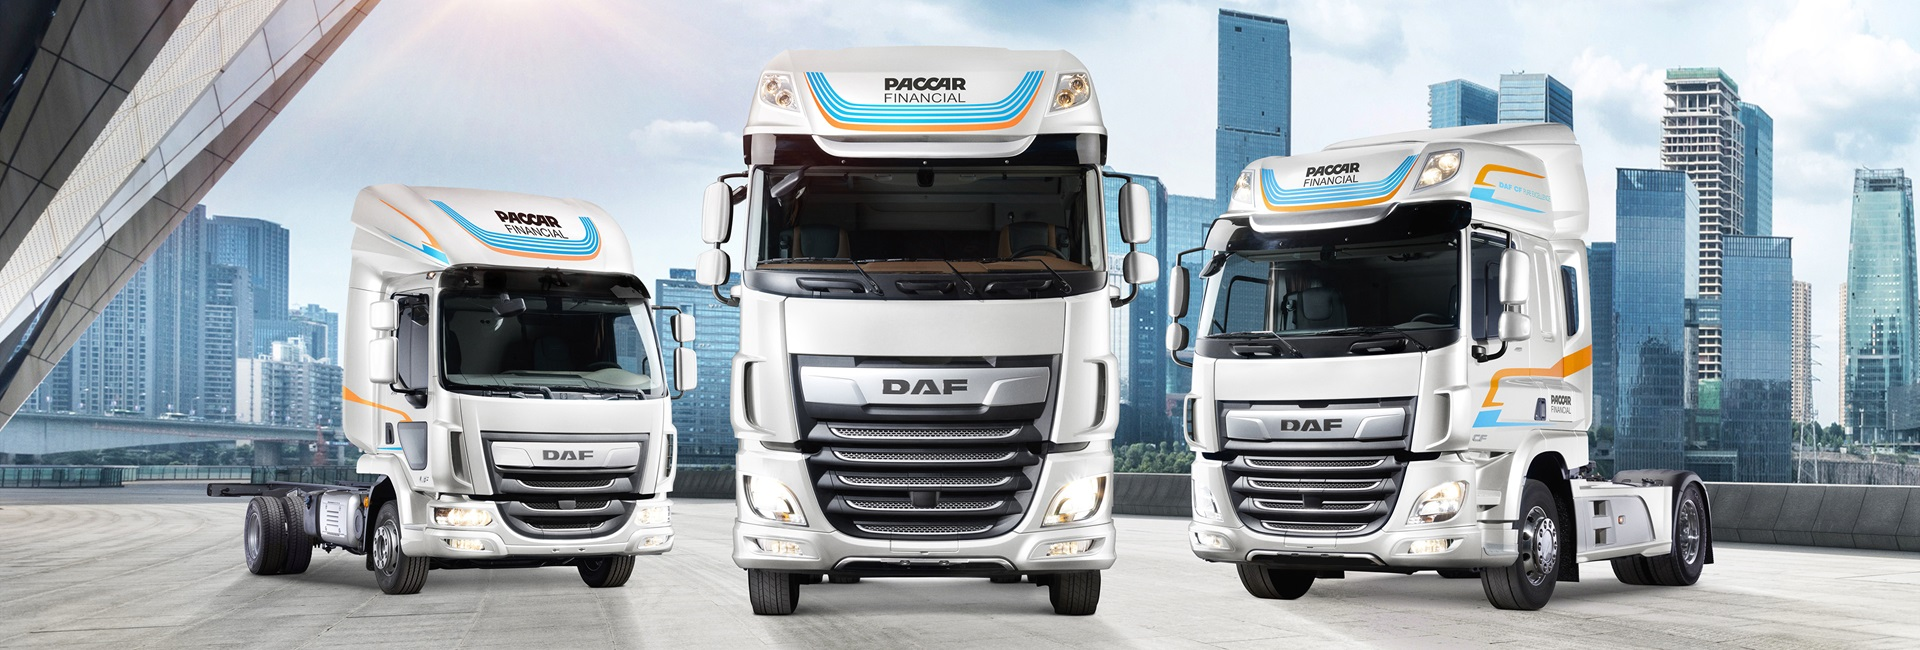 PACCAR Financial Range